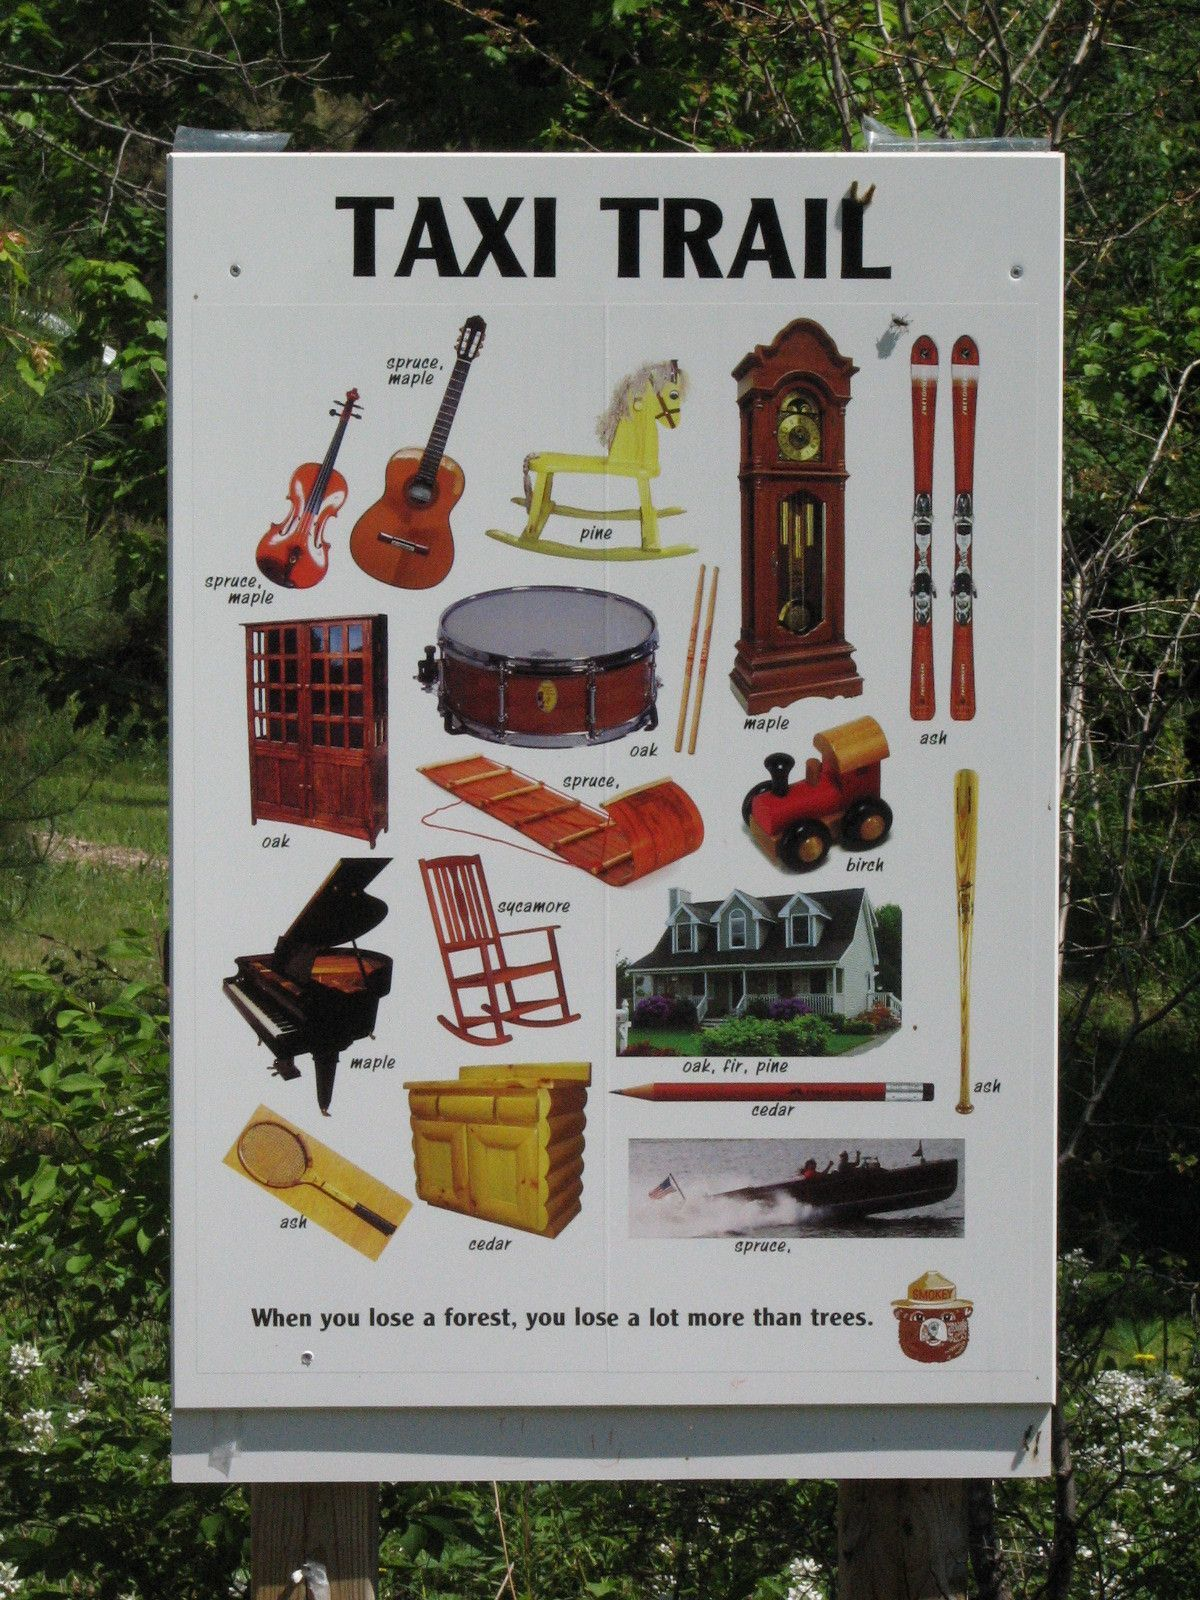 The Taxi Trail